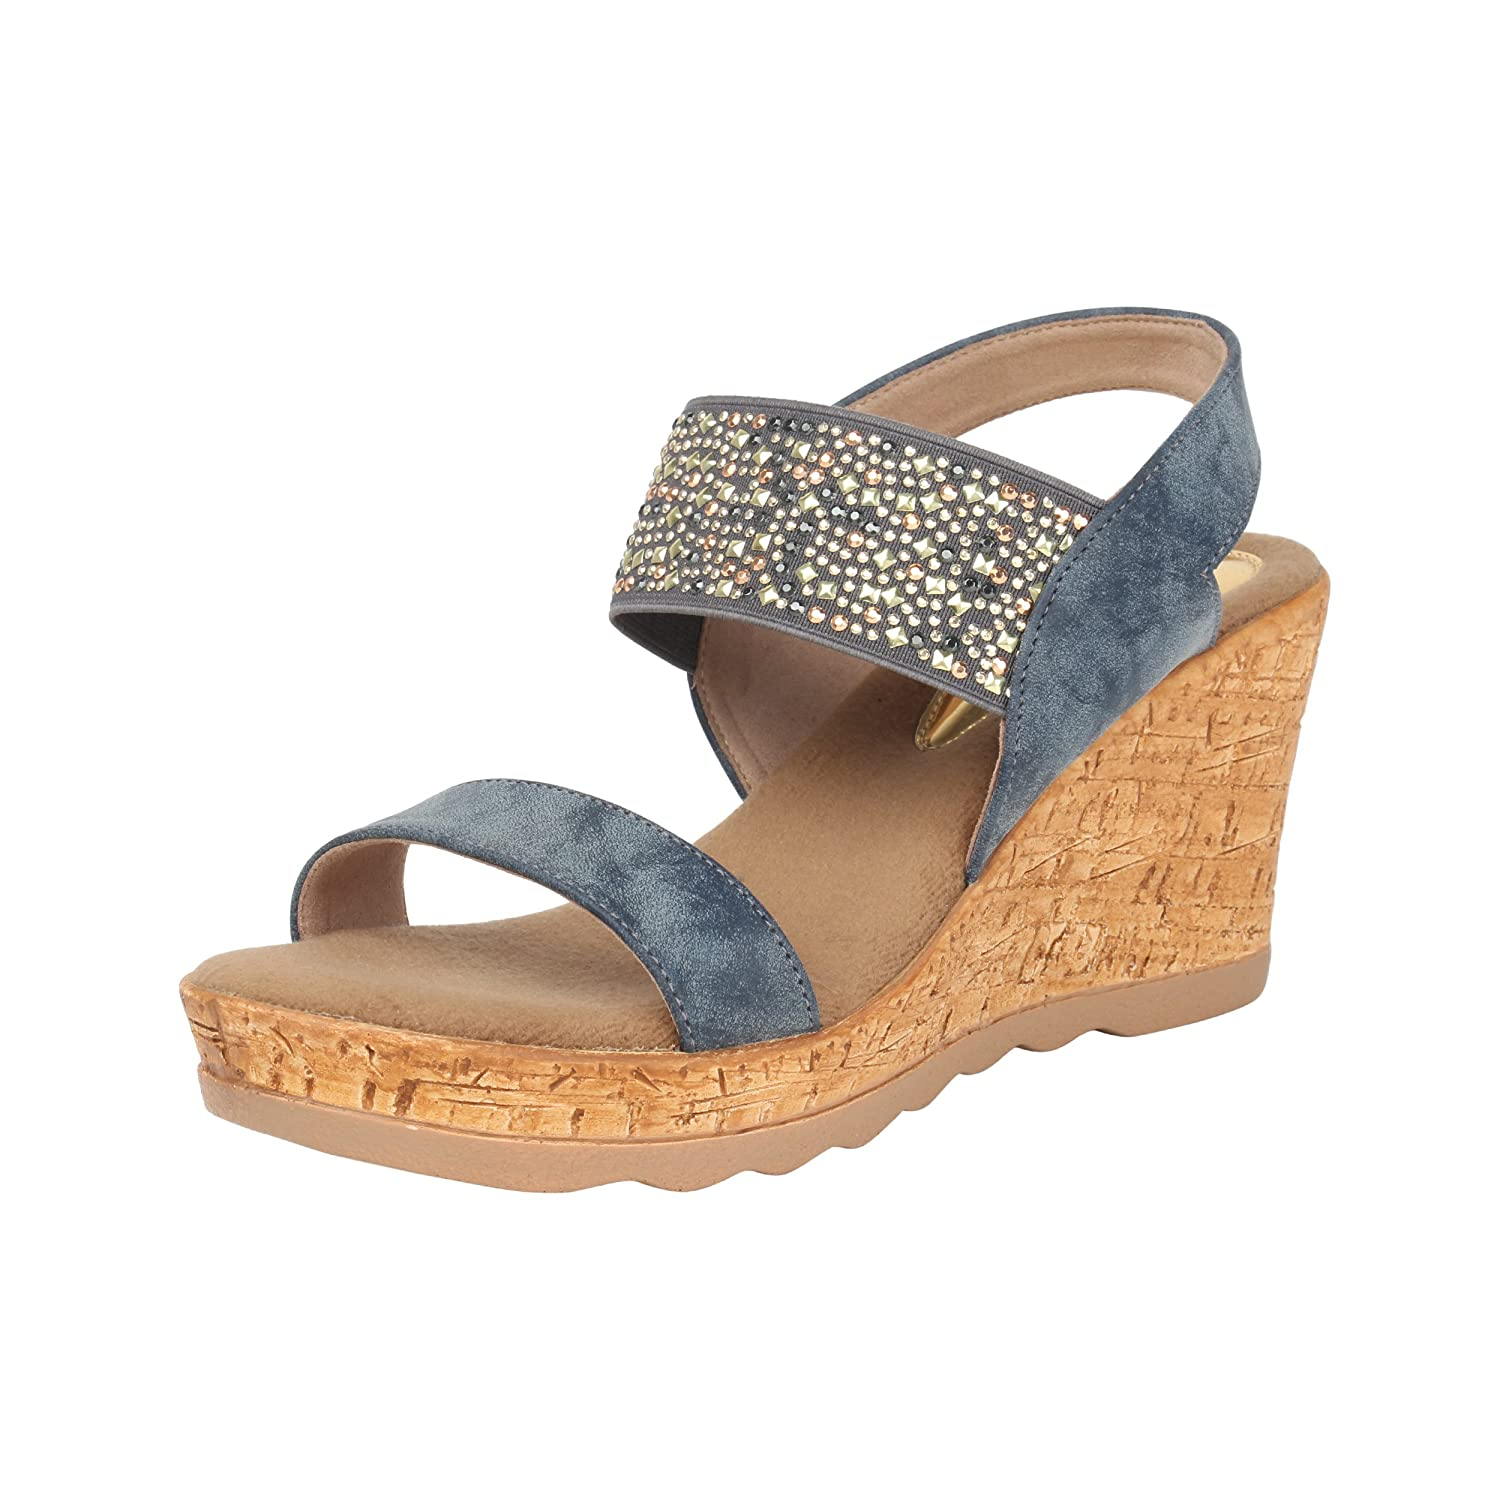 20e3ef275 Catwalk Blue Wedges Heel Sandals  Buy Online at Low Prices in India -  Amazon.in